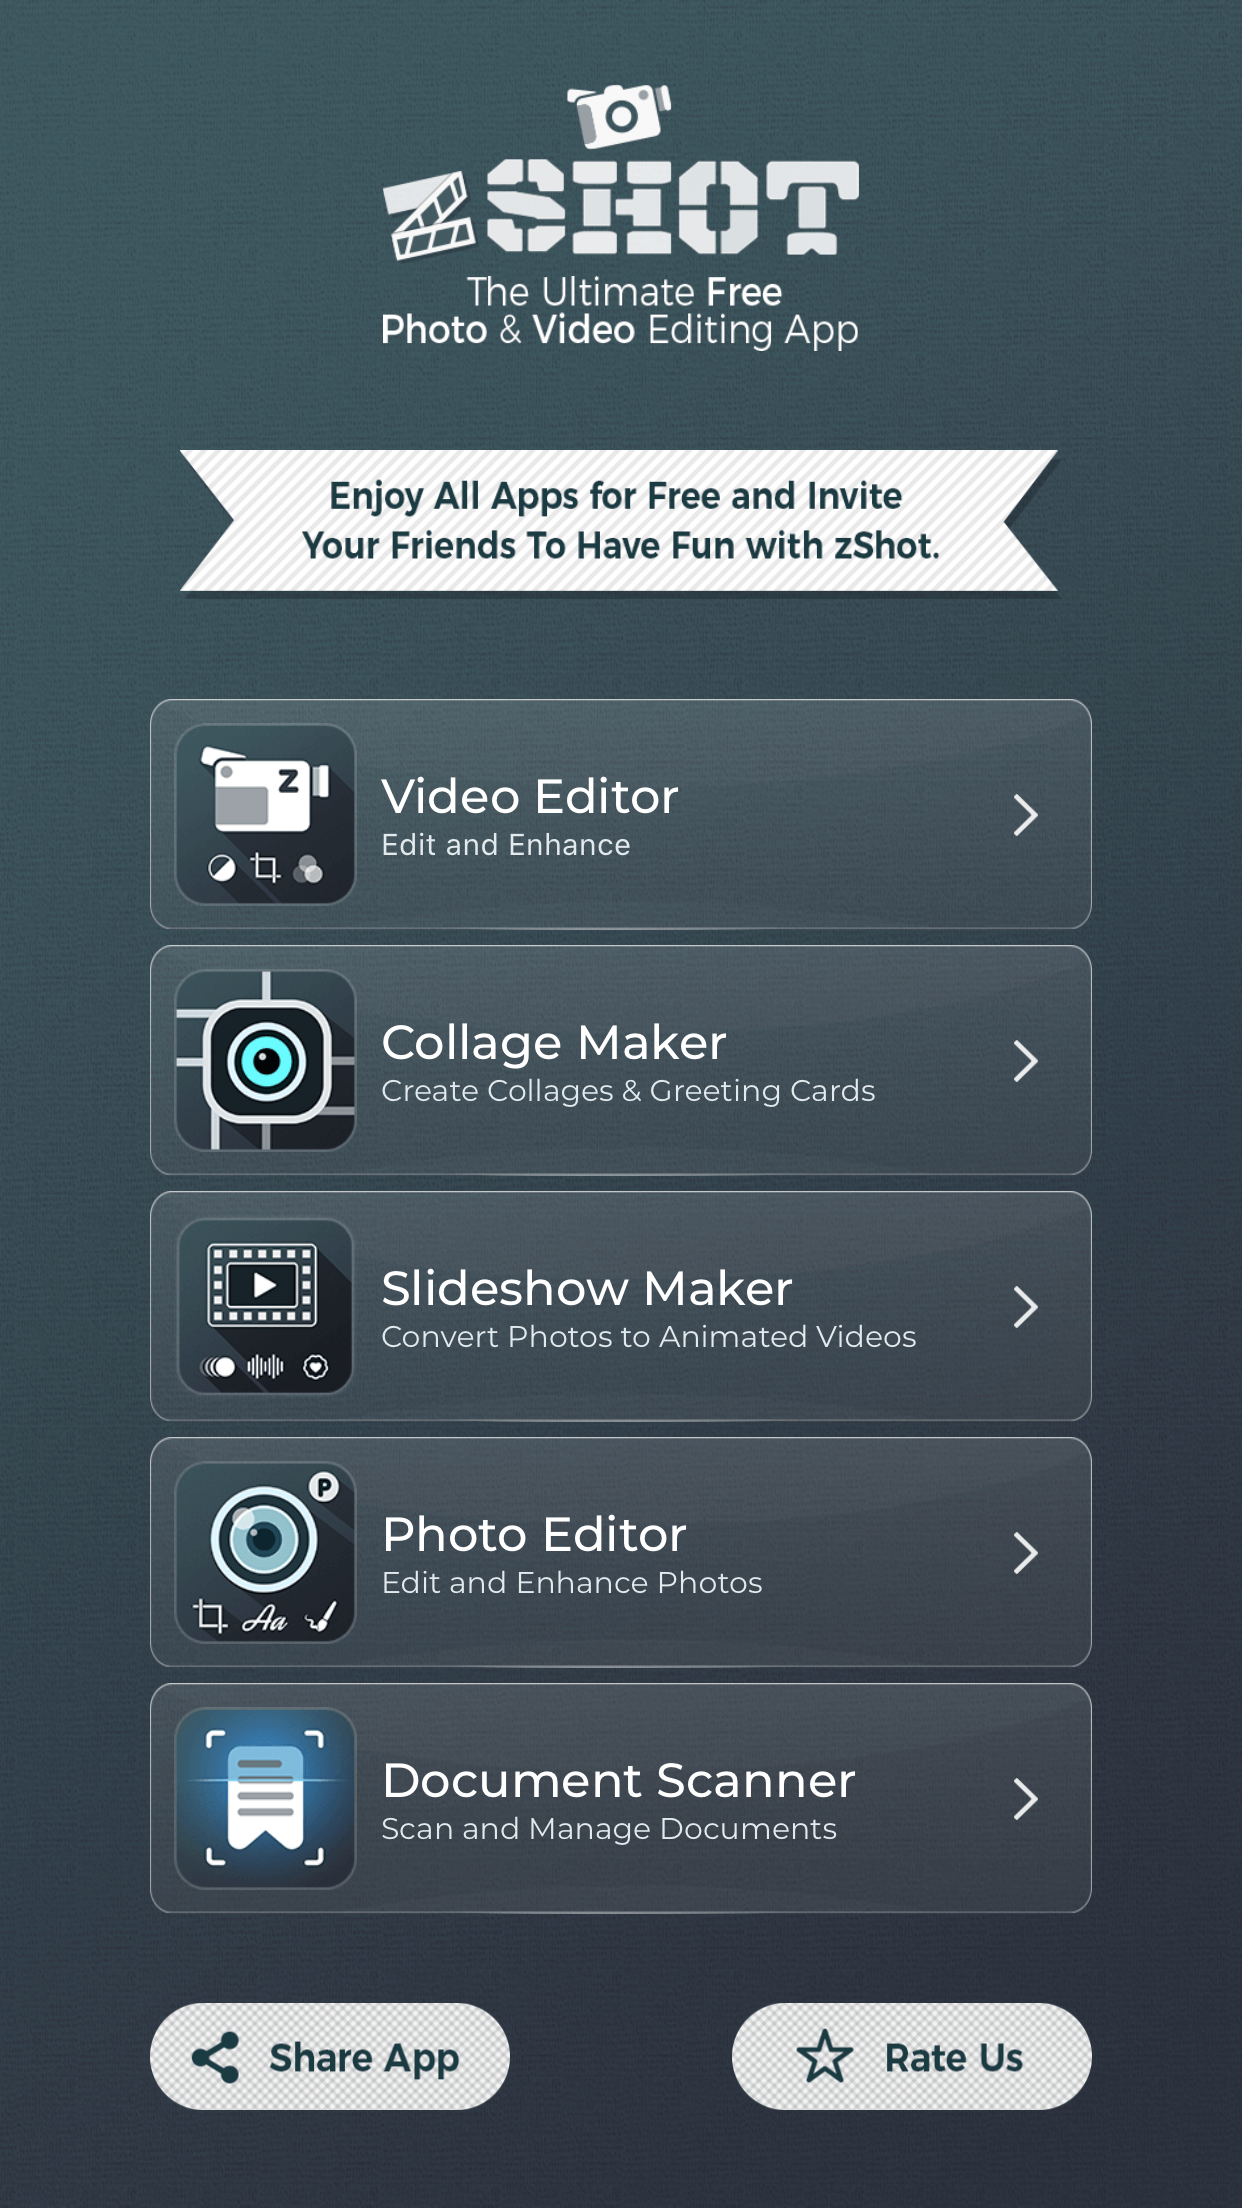 zShot offers 5 amazing apps.